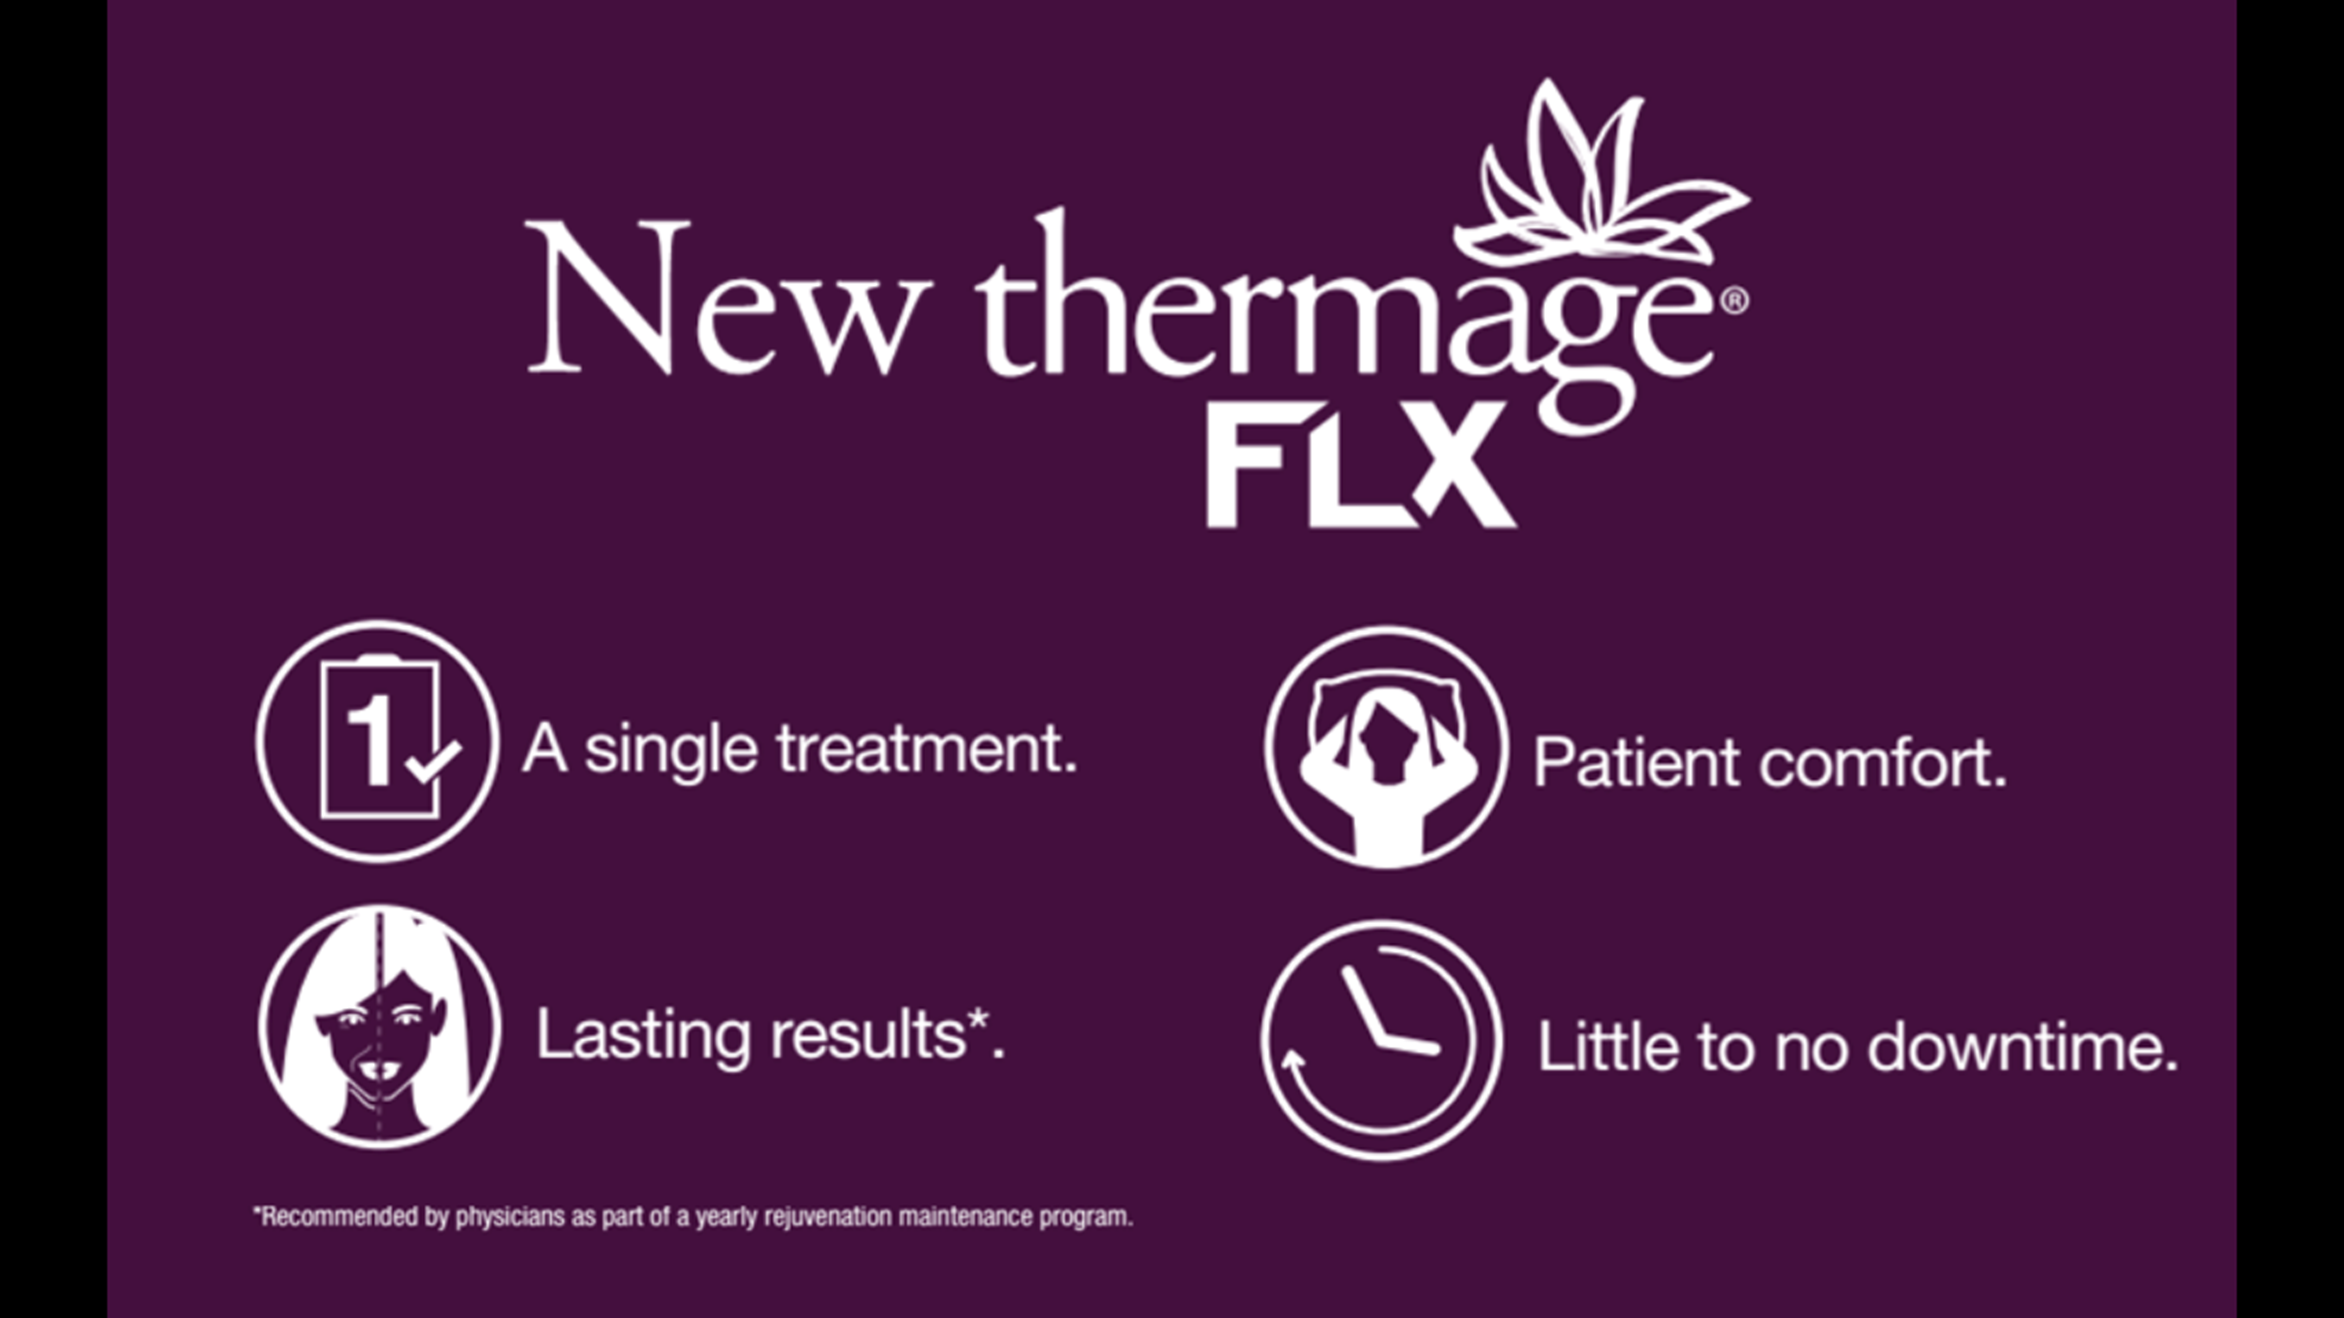 Revolutionary New Thermage FLX Non-Surgical Facelift & Skin